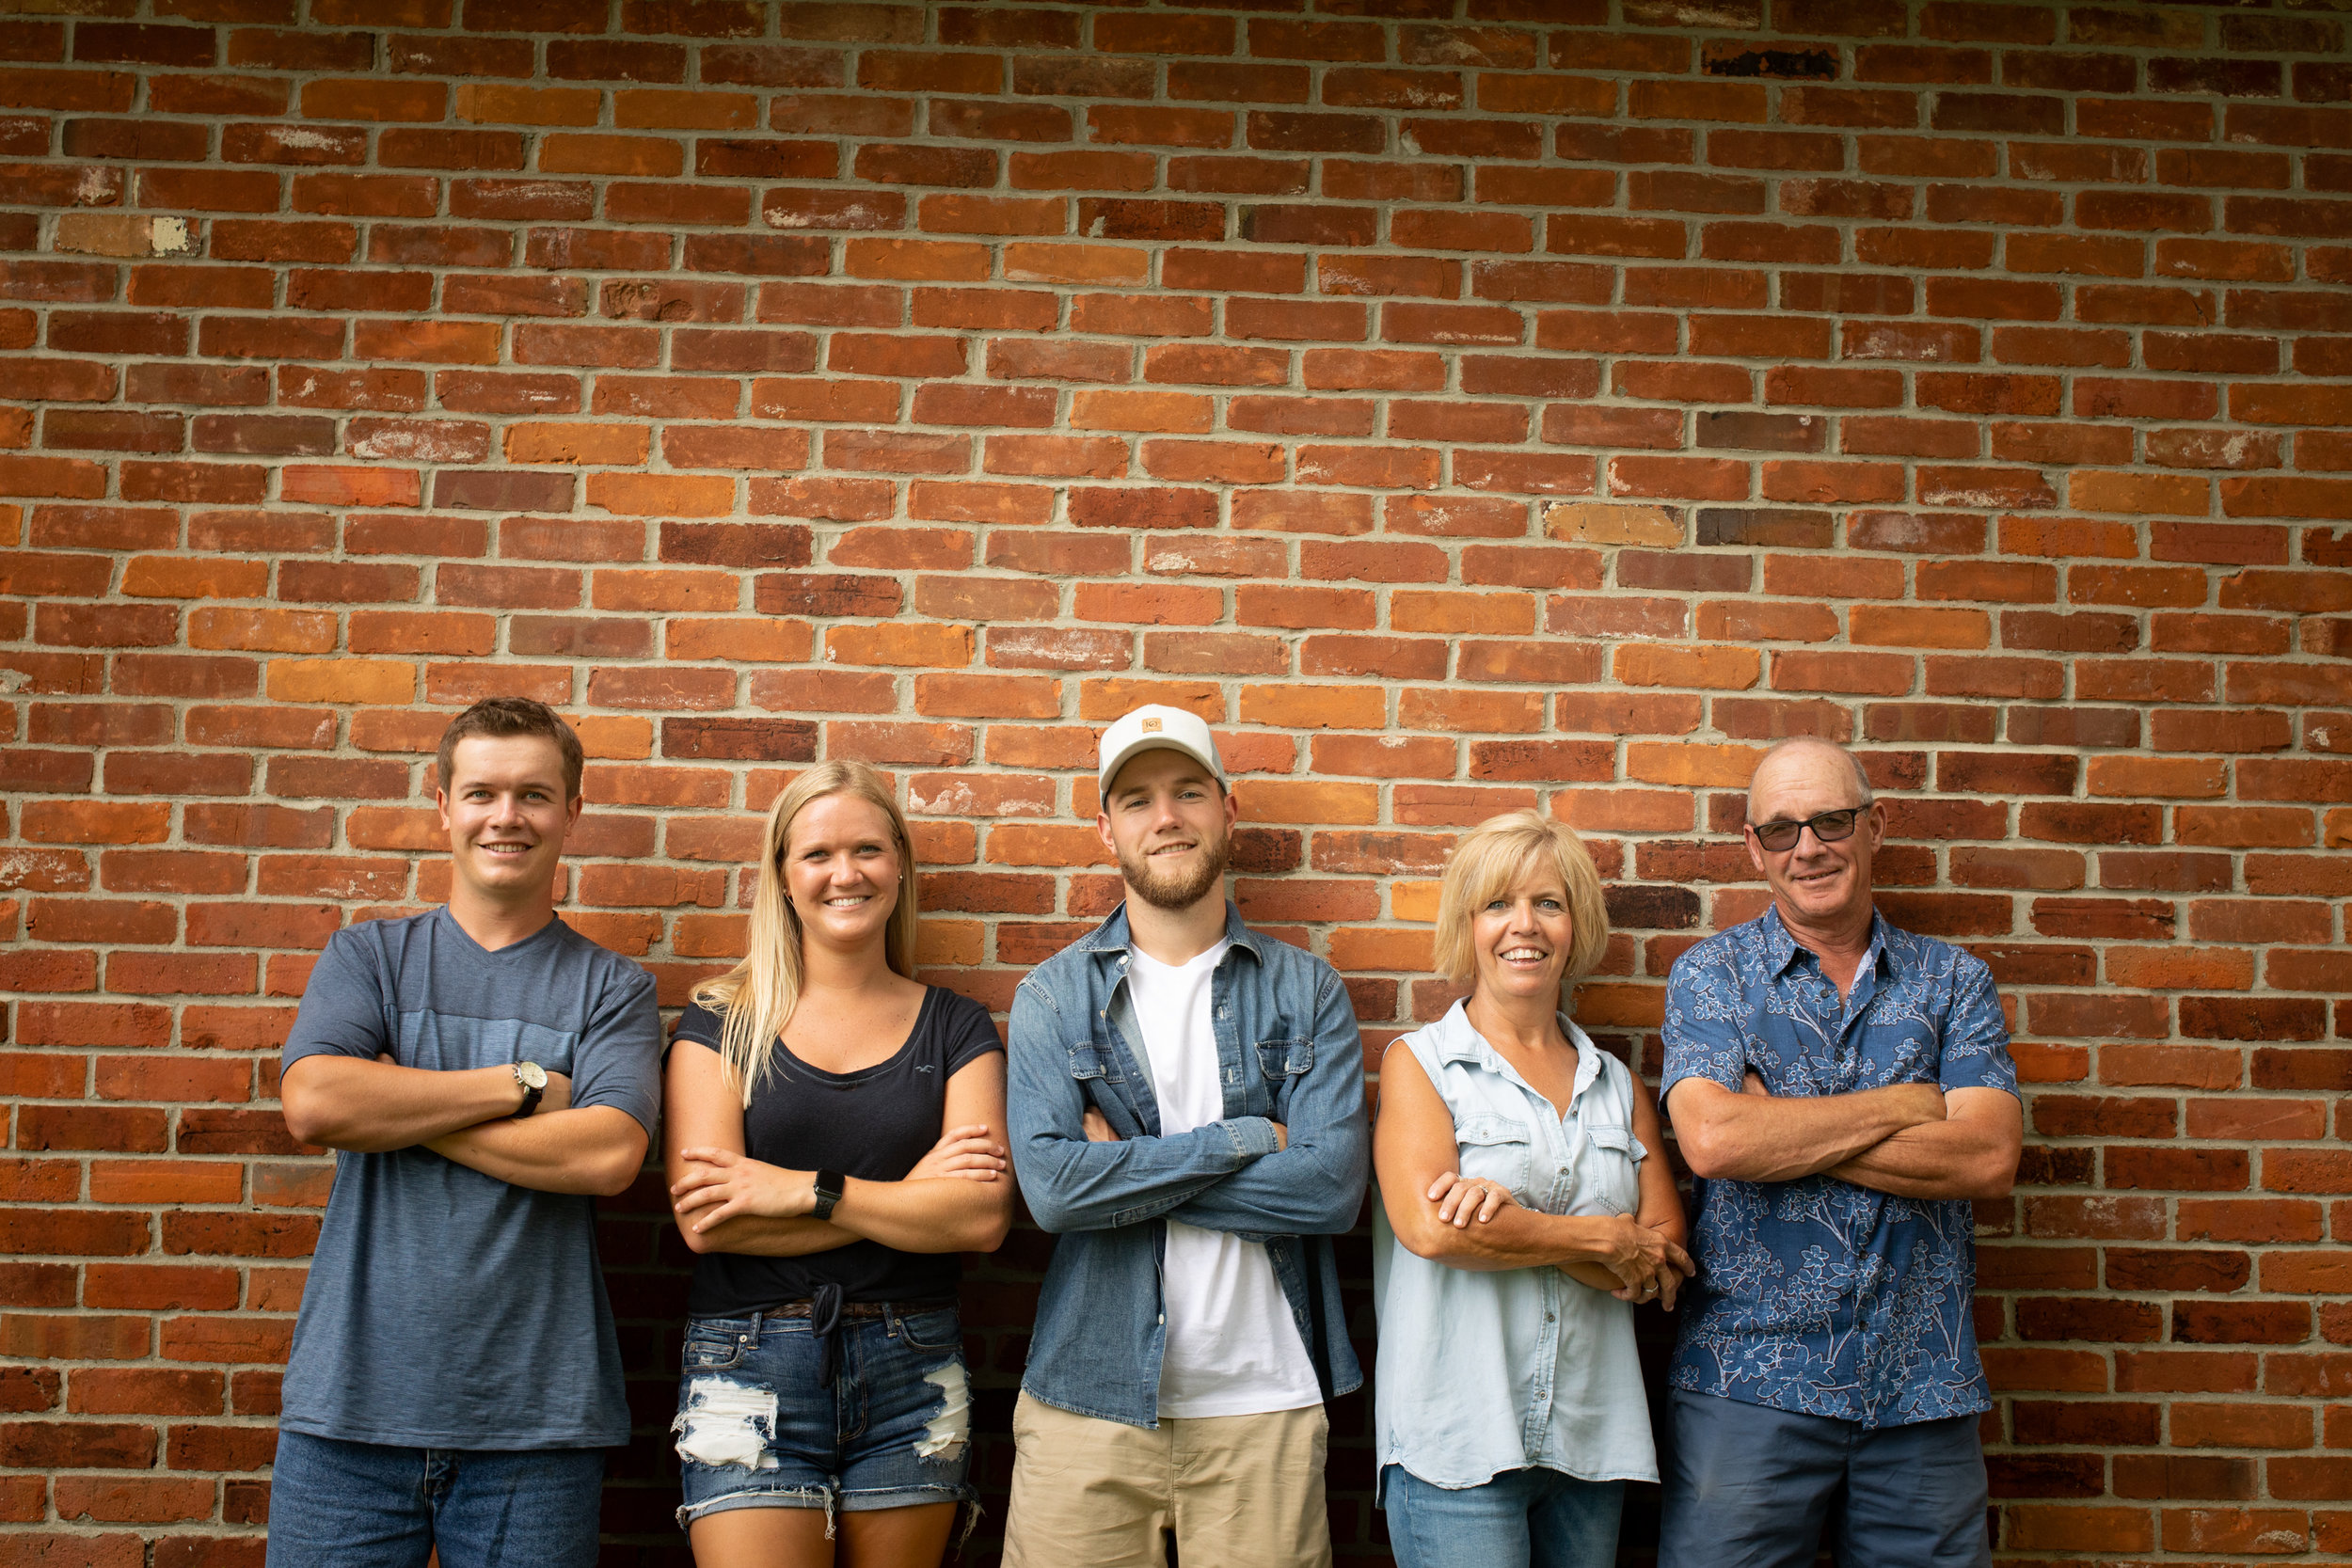 Family-agricultural-photographer-jodie-aldred-photography-rural-country-farm-farmers-ontario-london-huron-middlesex-elgin-chatham-elgin-rural-country-outdoors-brick-summer.jpg